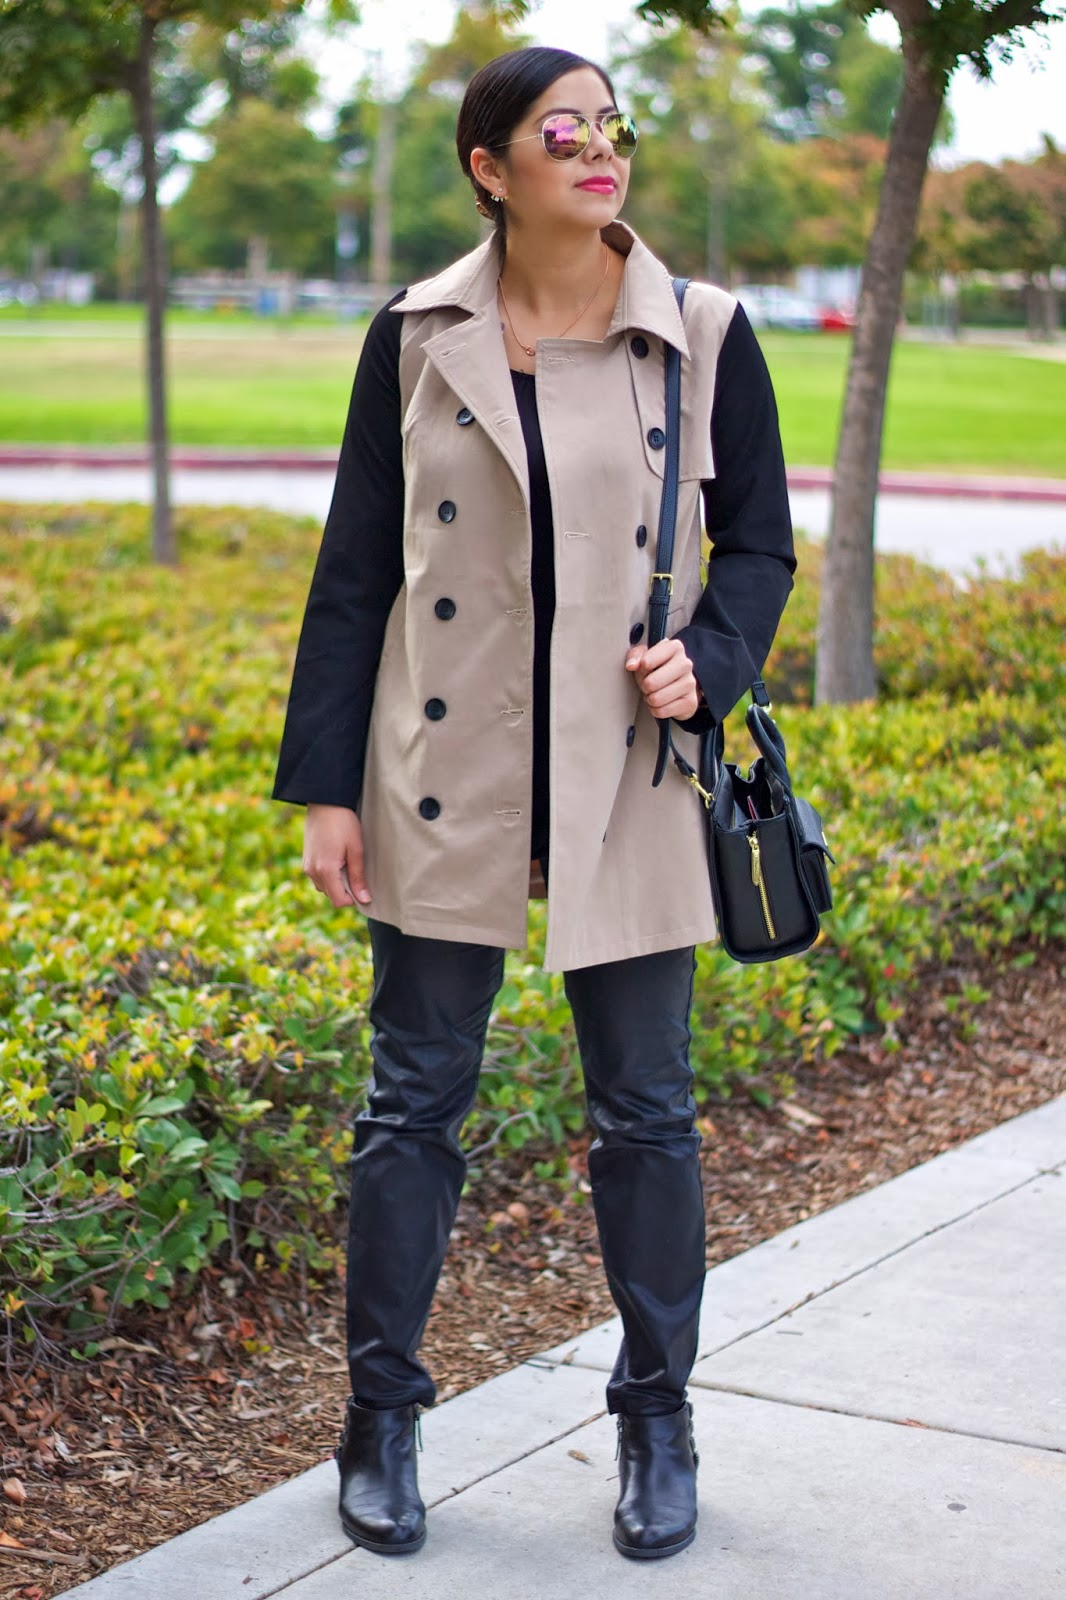 Lil bits of Chic: Trench on Black Outfit